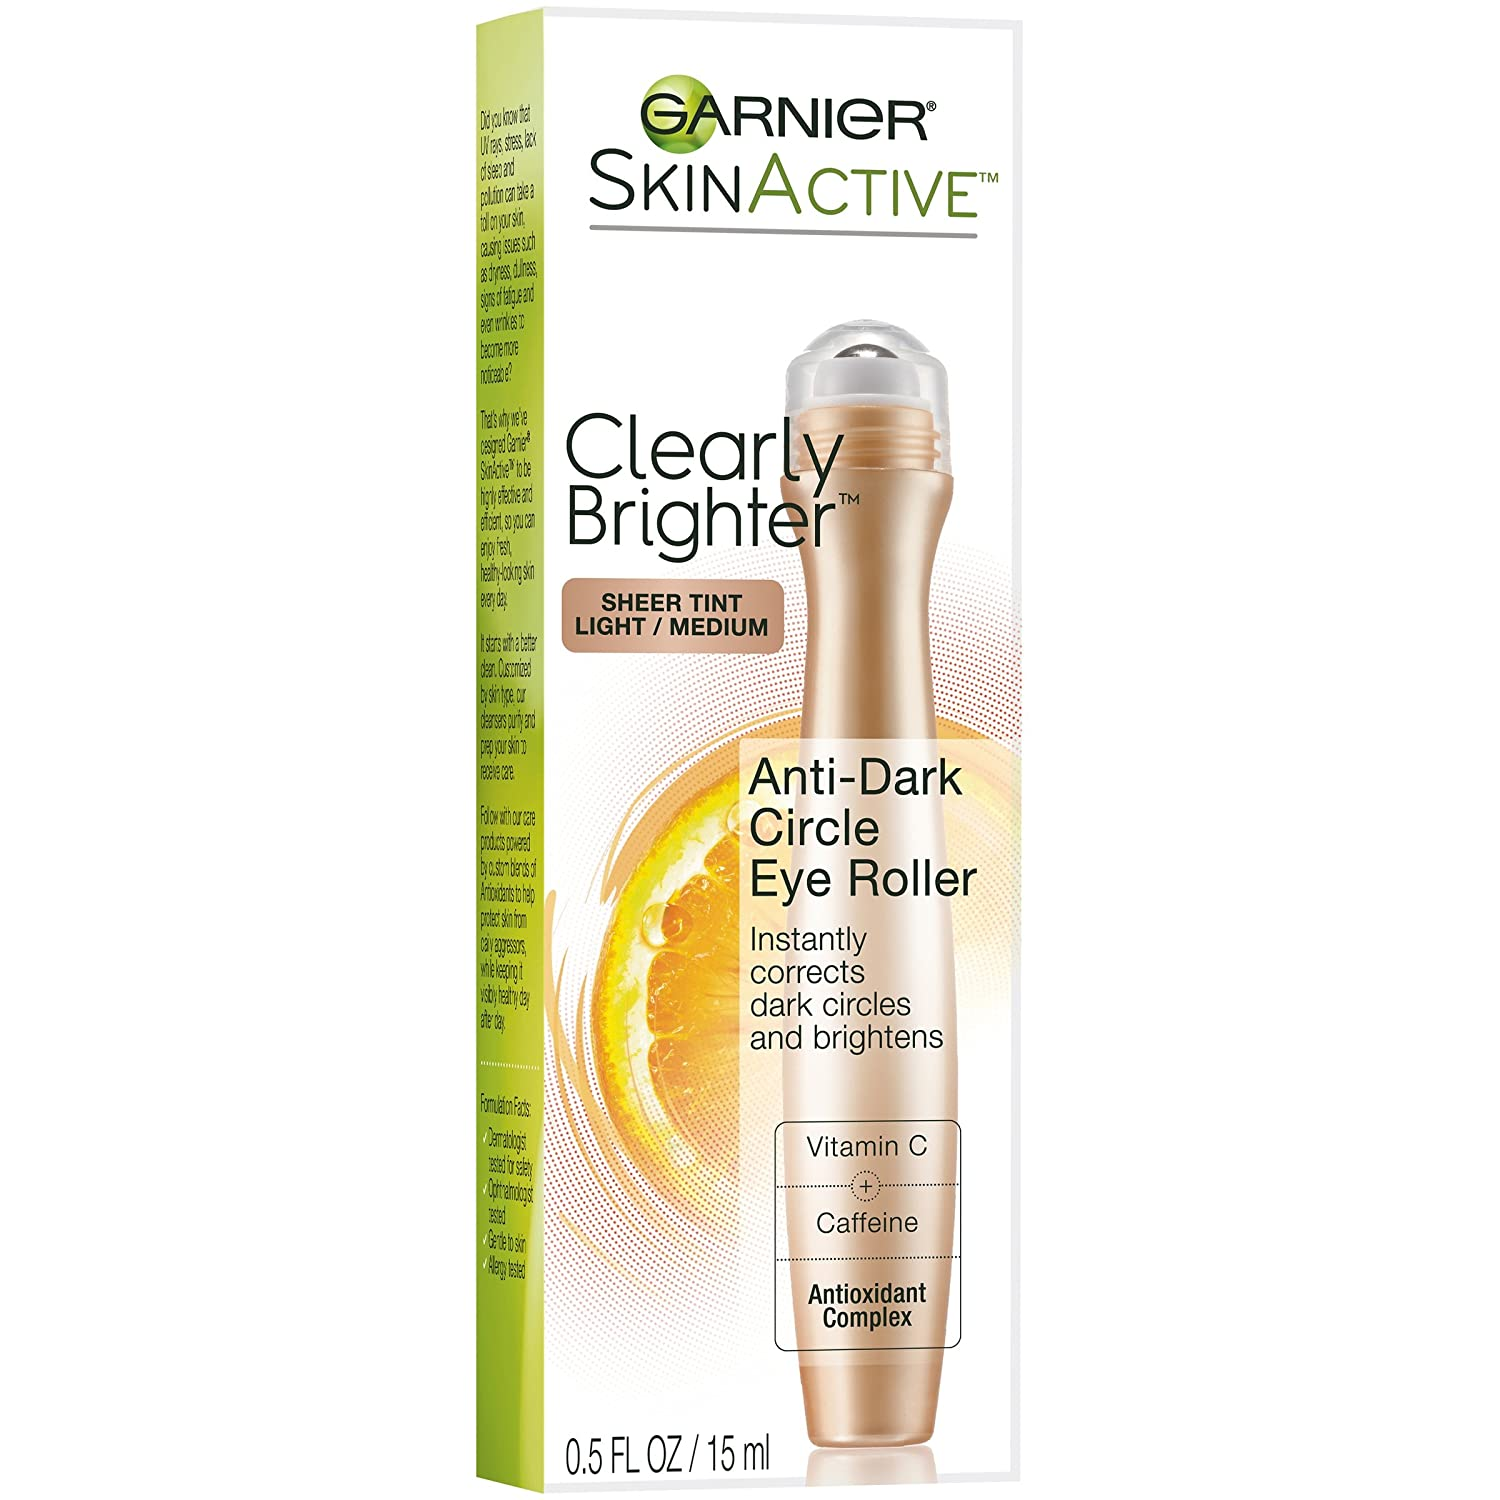 Garnier Skinactive Clearly Brighter Sheer Tinted Eye Roller Light Complete Bright Up Tone Cream 15 Ml Medium 05 Fl Oz Business Industry Science